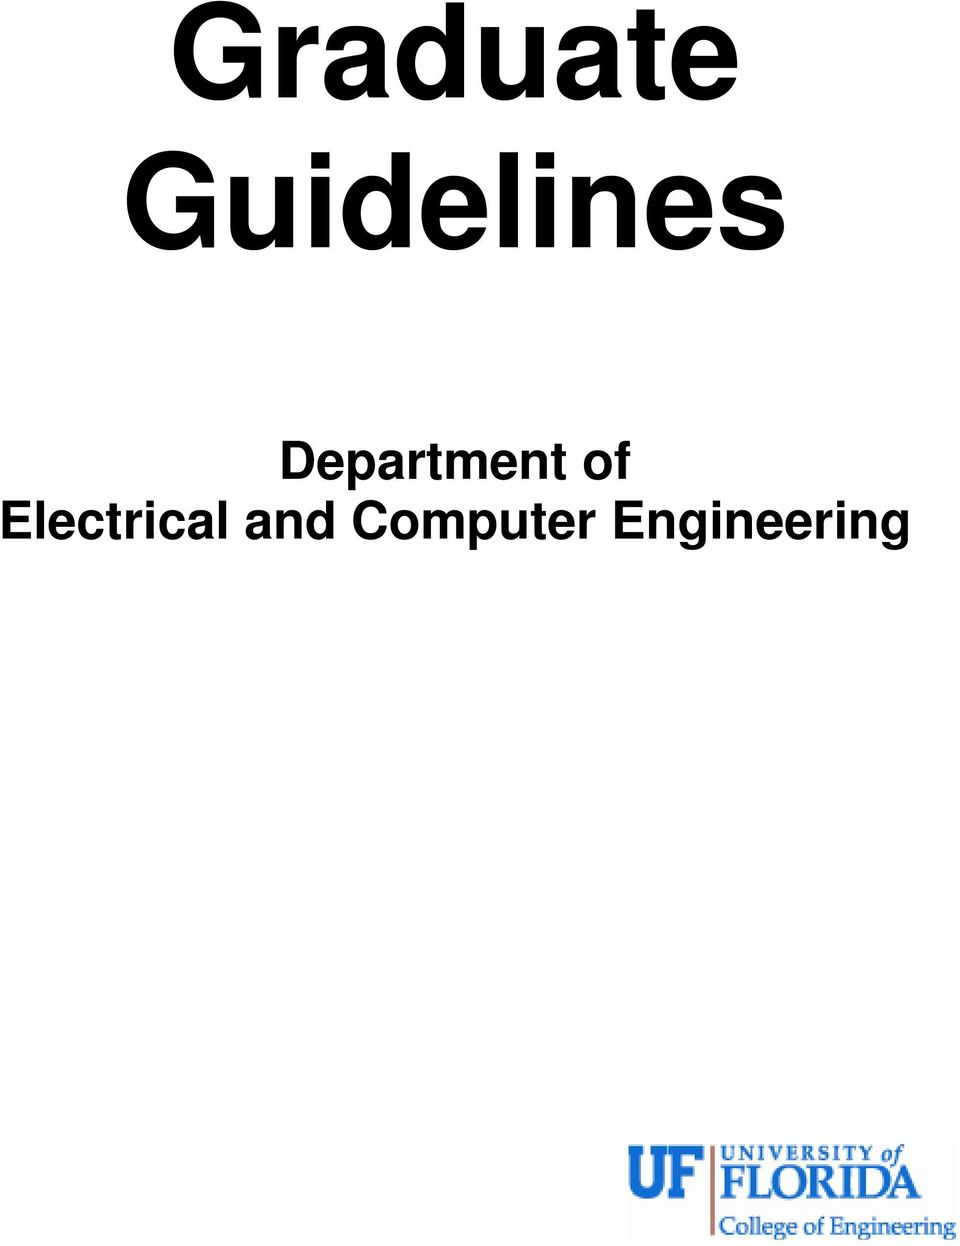 Electrical and Computer Engineering | Virginia Tech